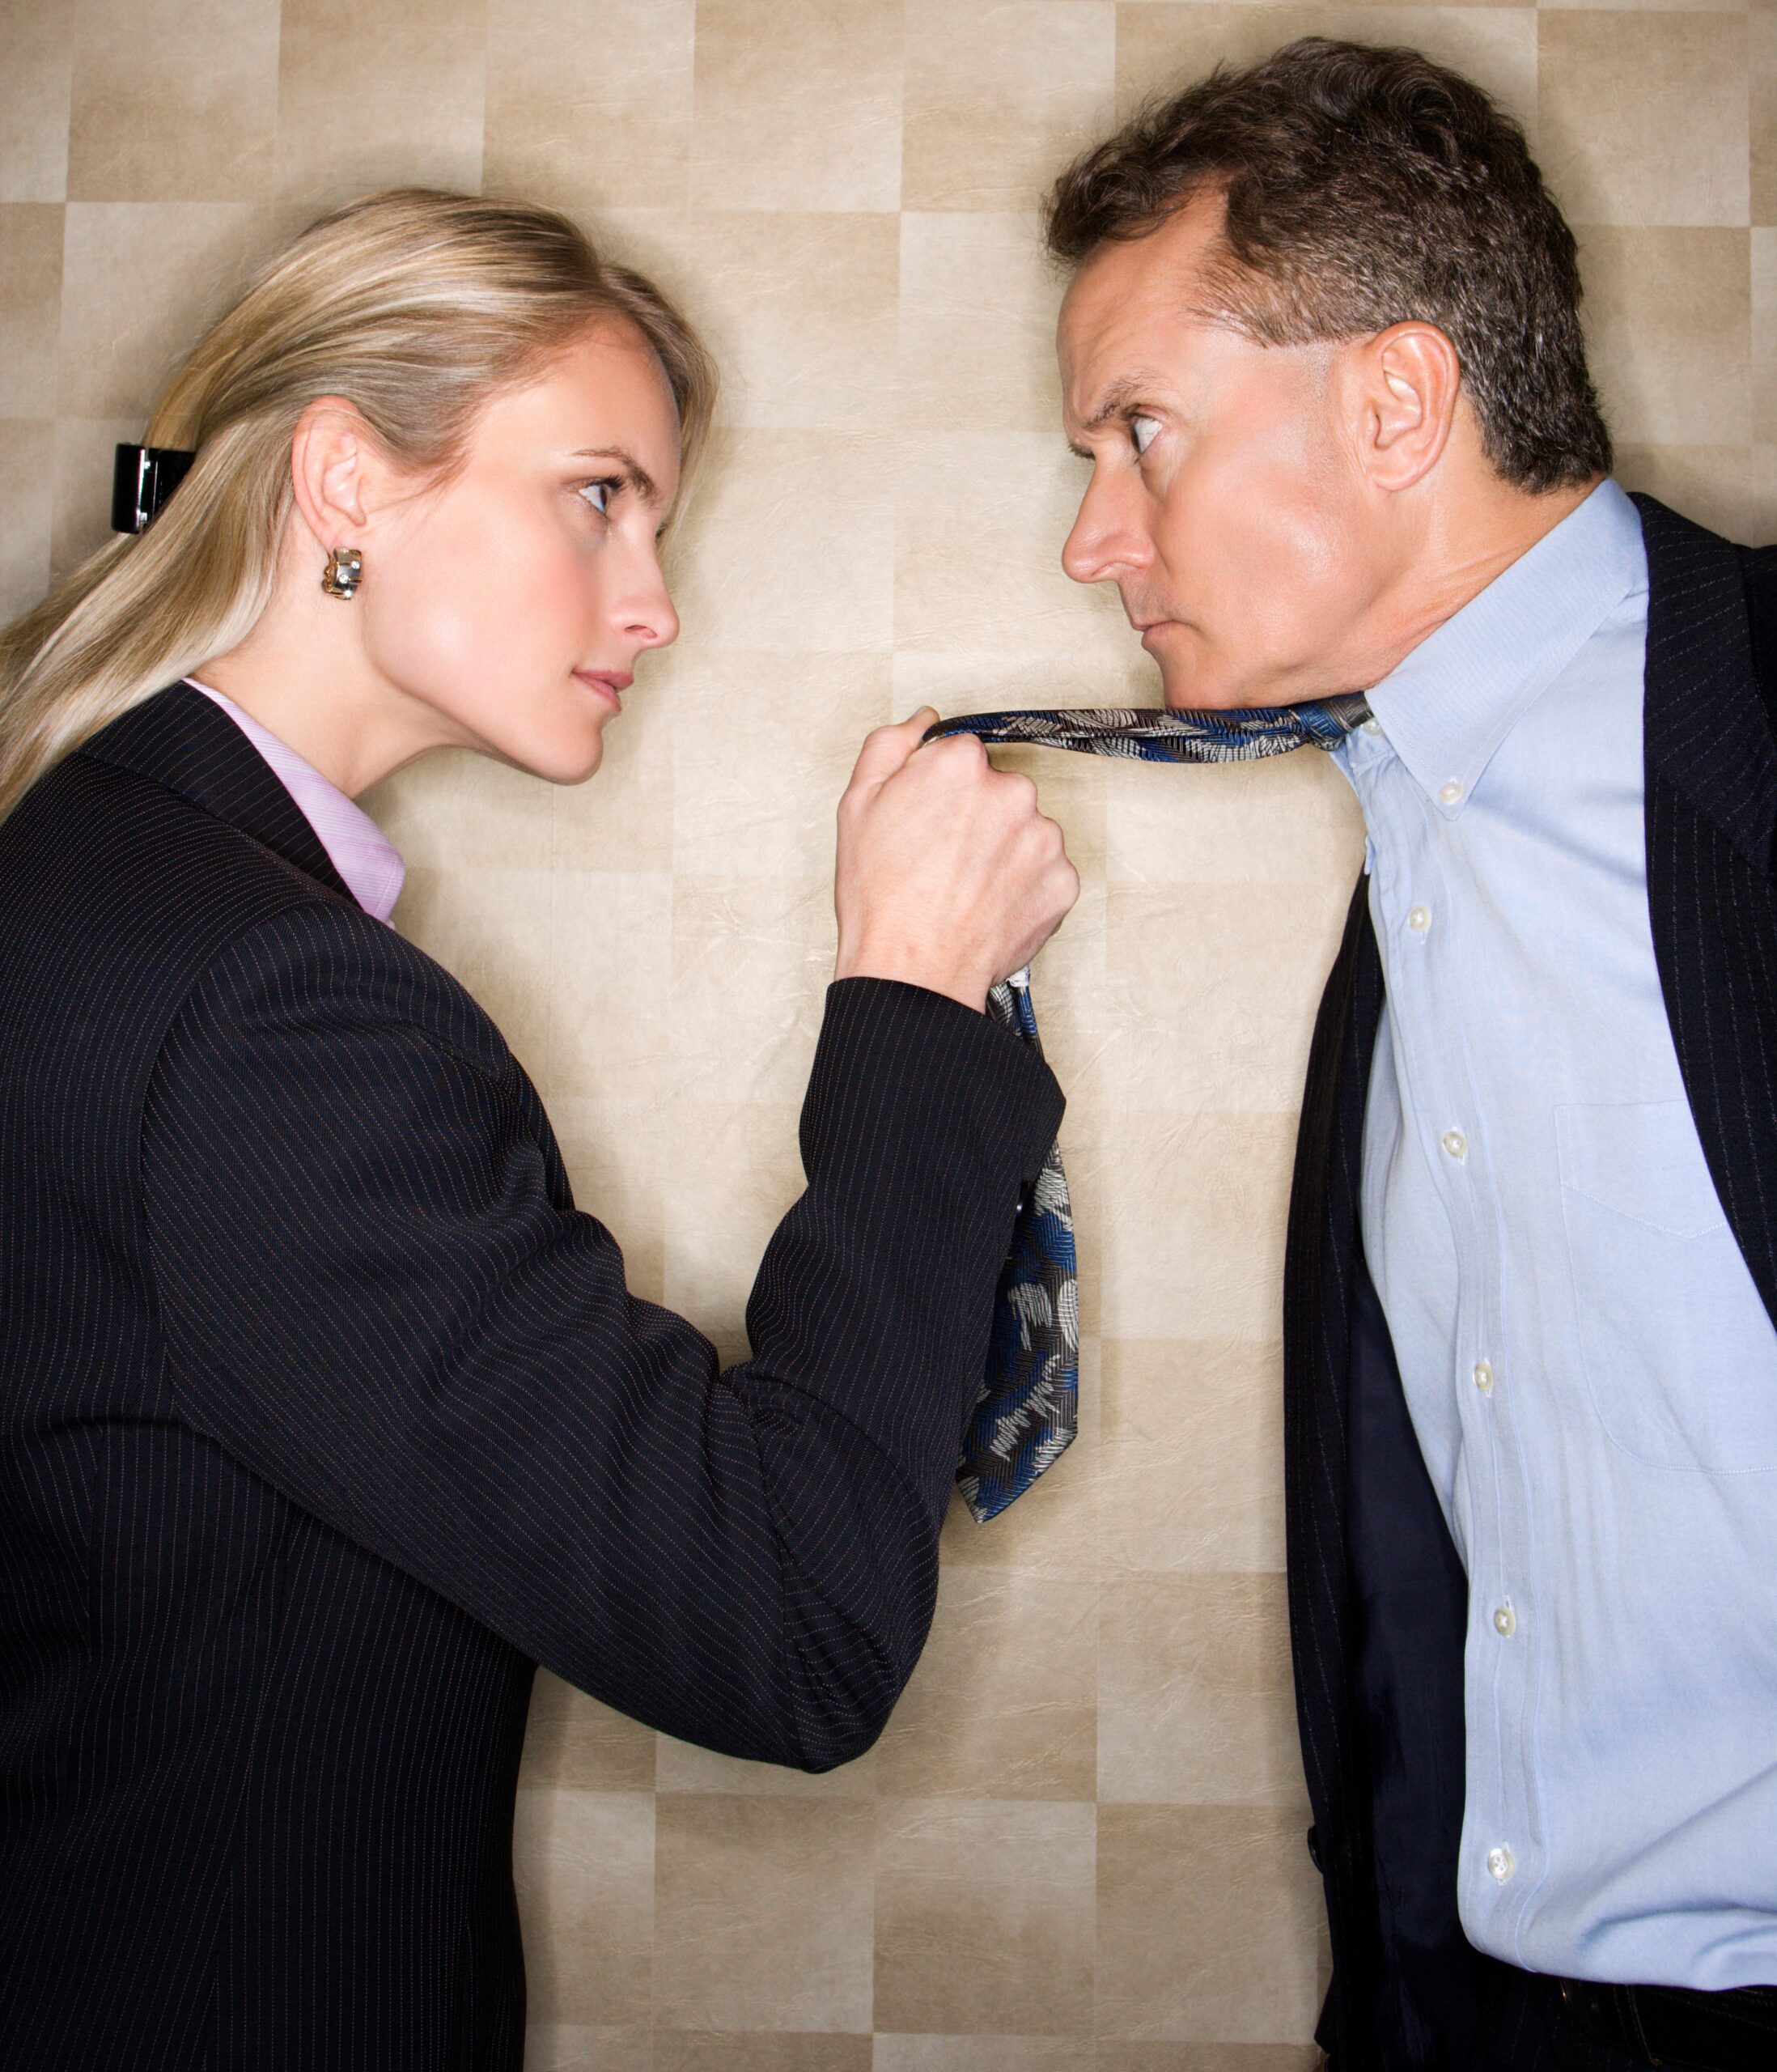 Angry woman pulling man by neck tie